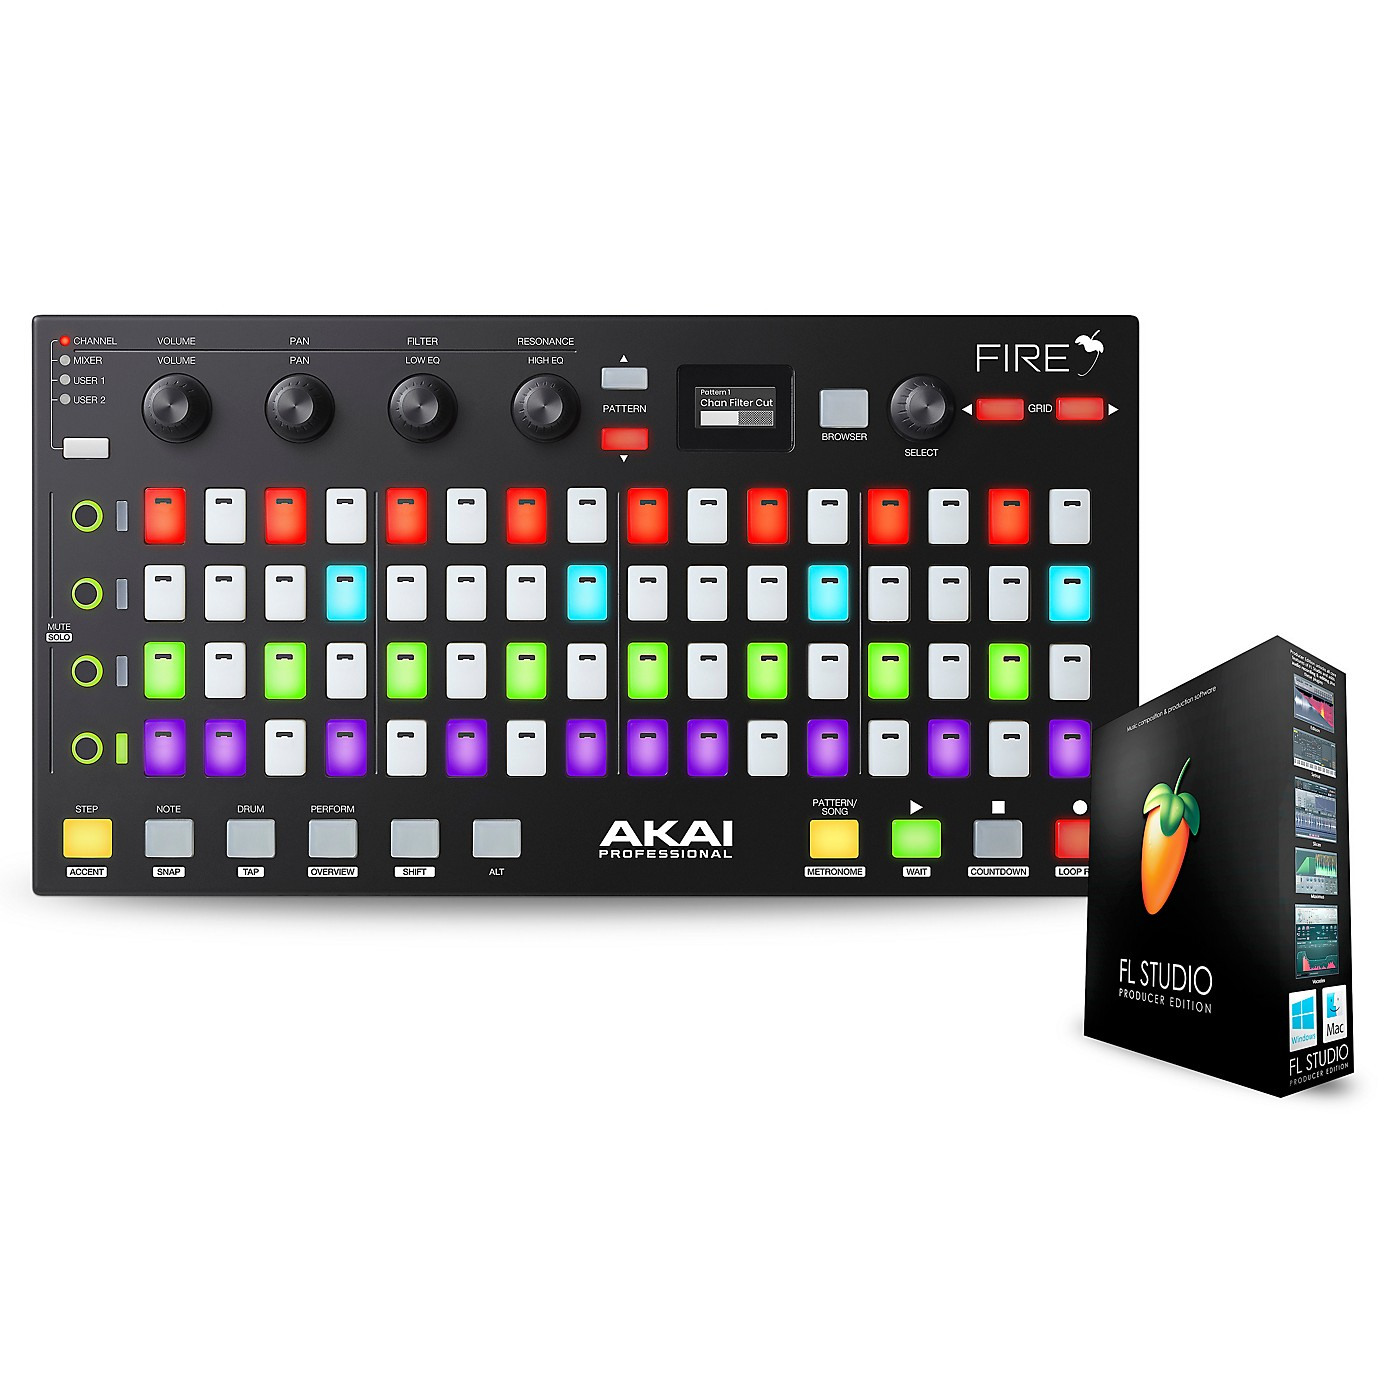 Akai Professional Fire FL Studio Controller with FL Studio Producer Edition thumbnail